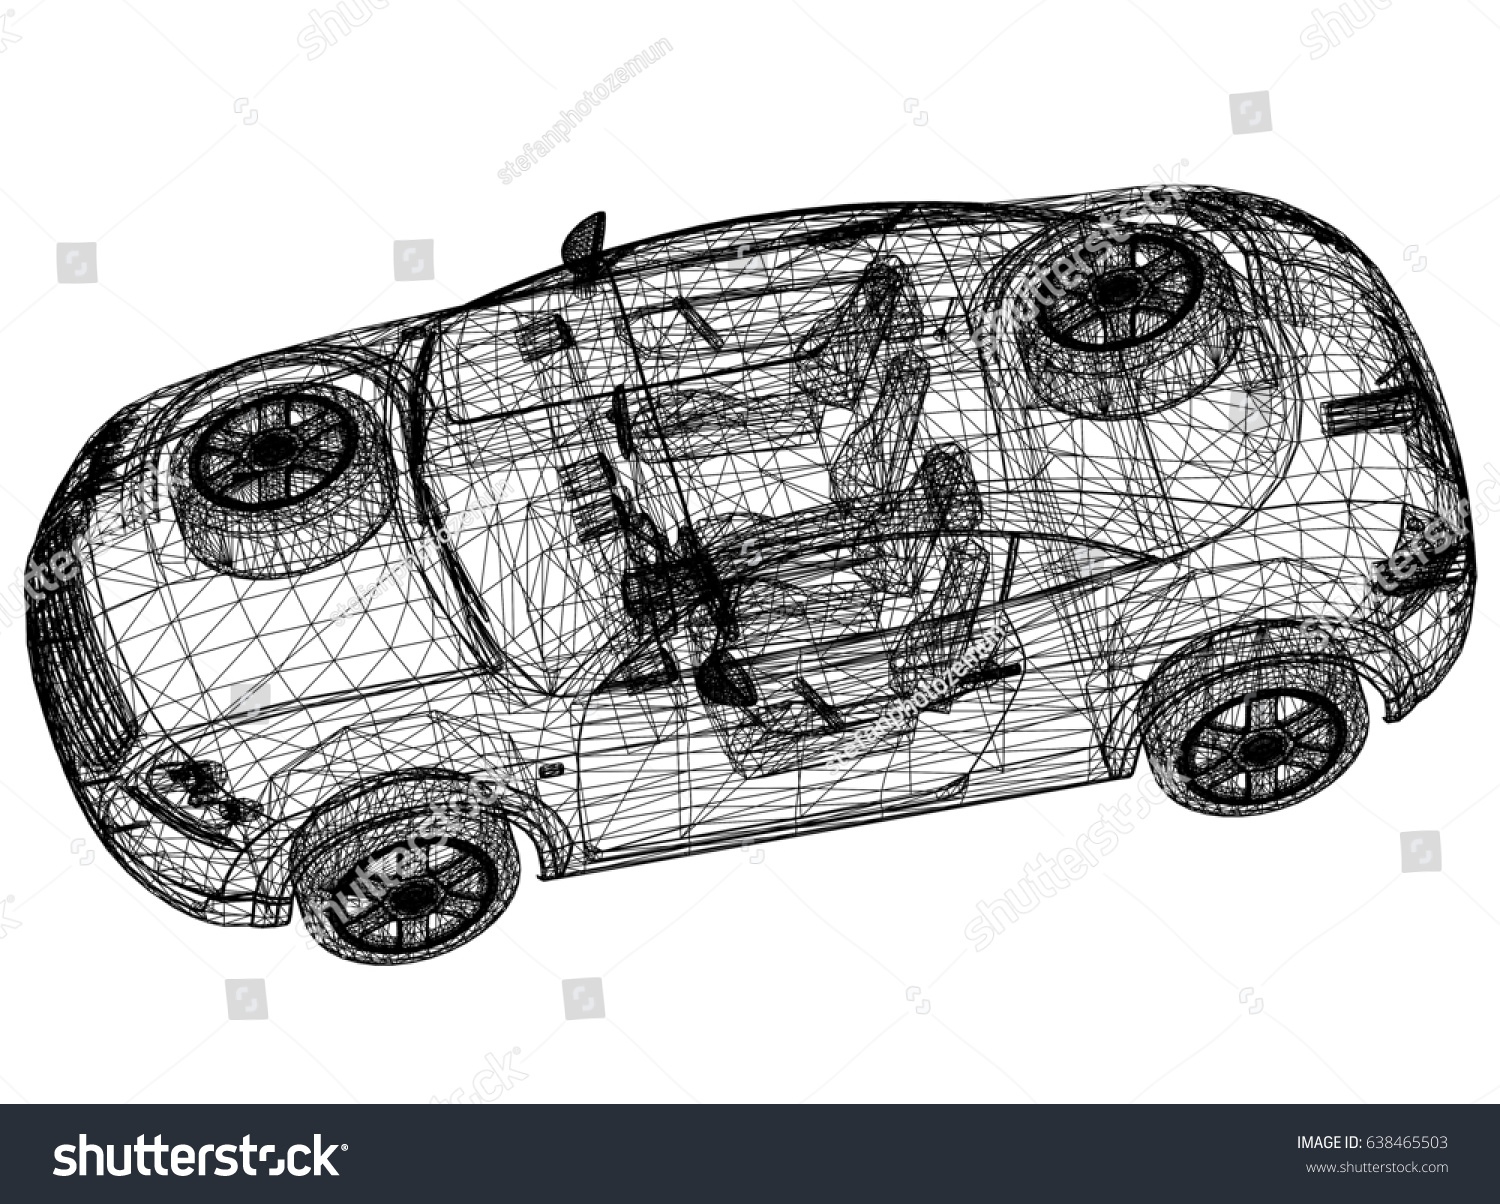 Concept car drawing 3d perspective